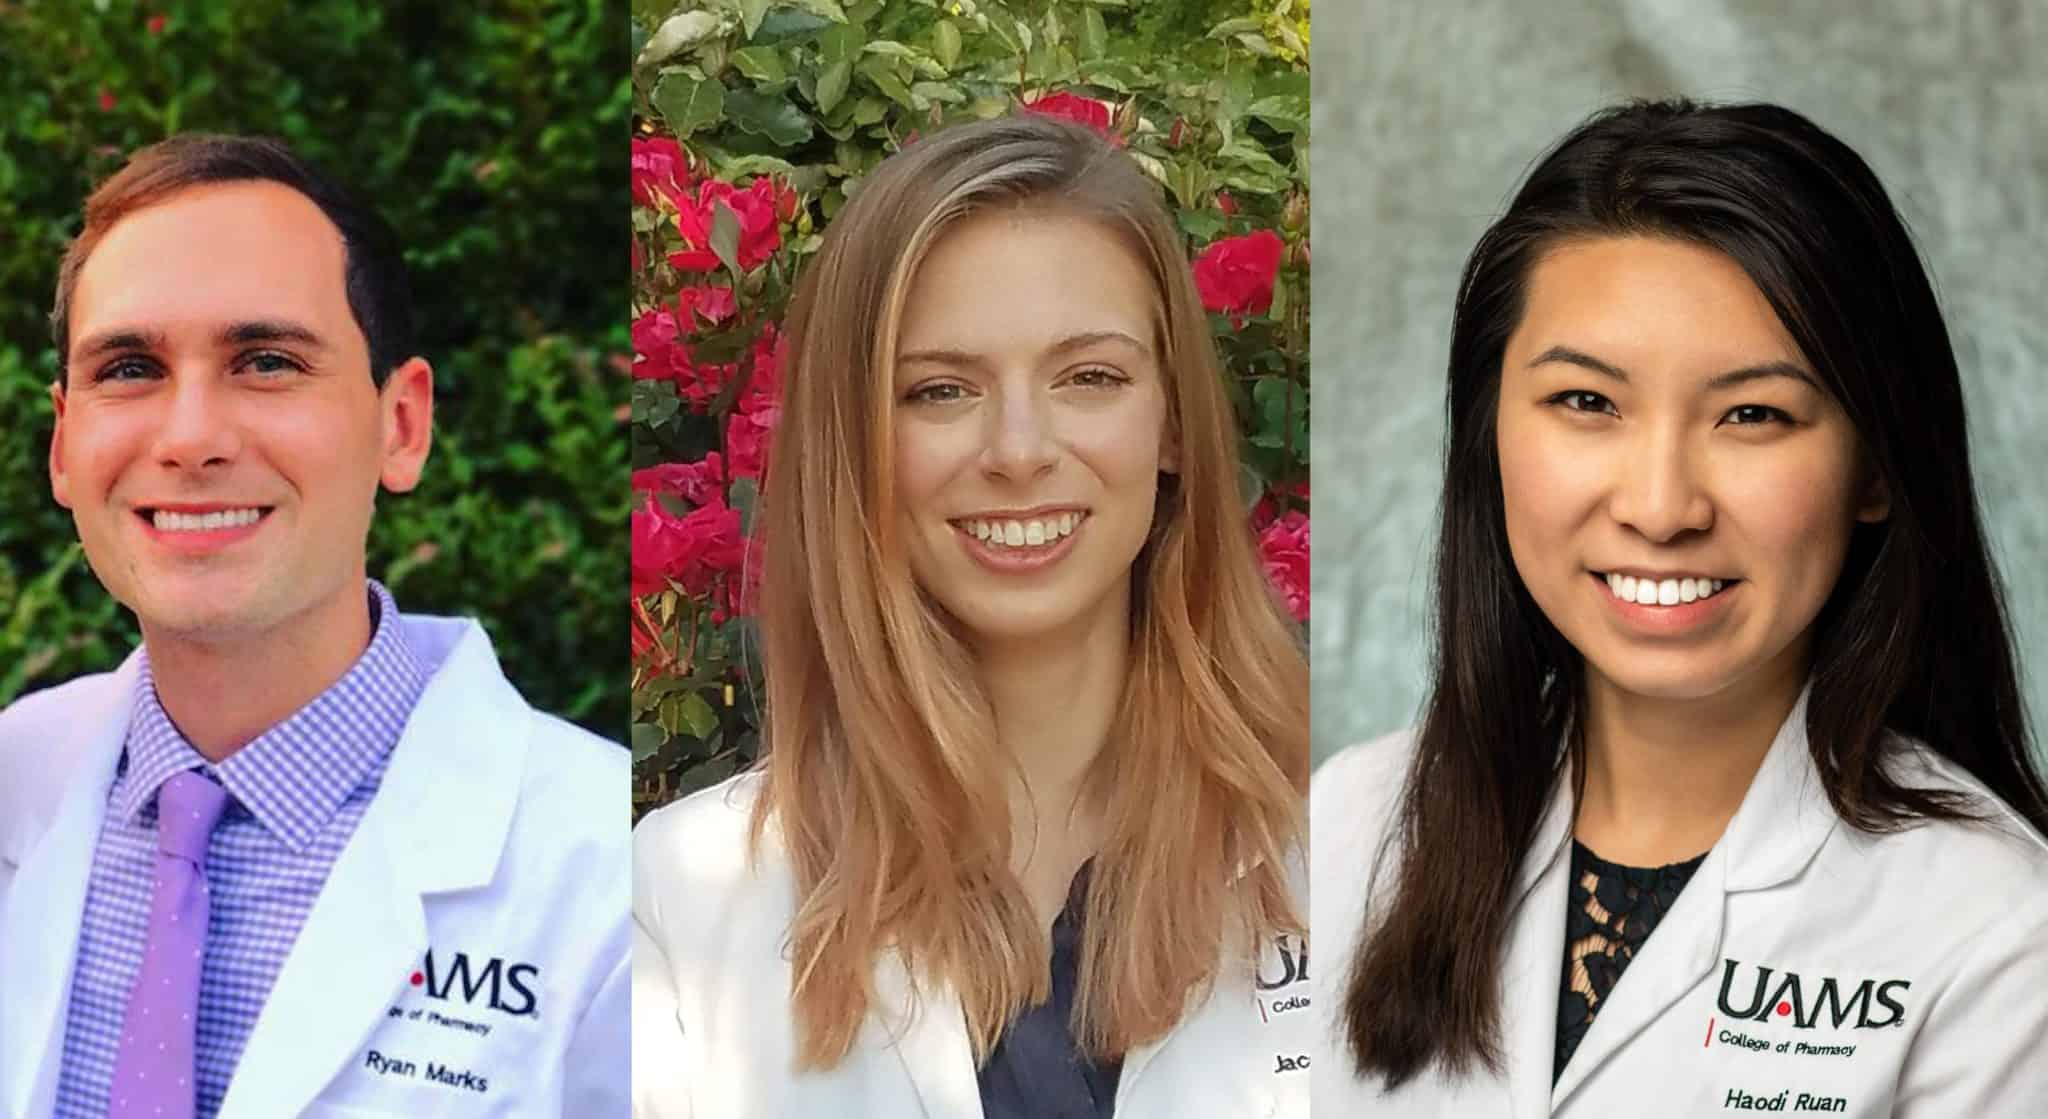 Team members (from left) Ryan Marks, Jacqueline Dodwell and Haodi Ruan competed in the American College of Clinical Pharmacy's Clinical Pharmacy Challenge.